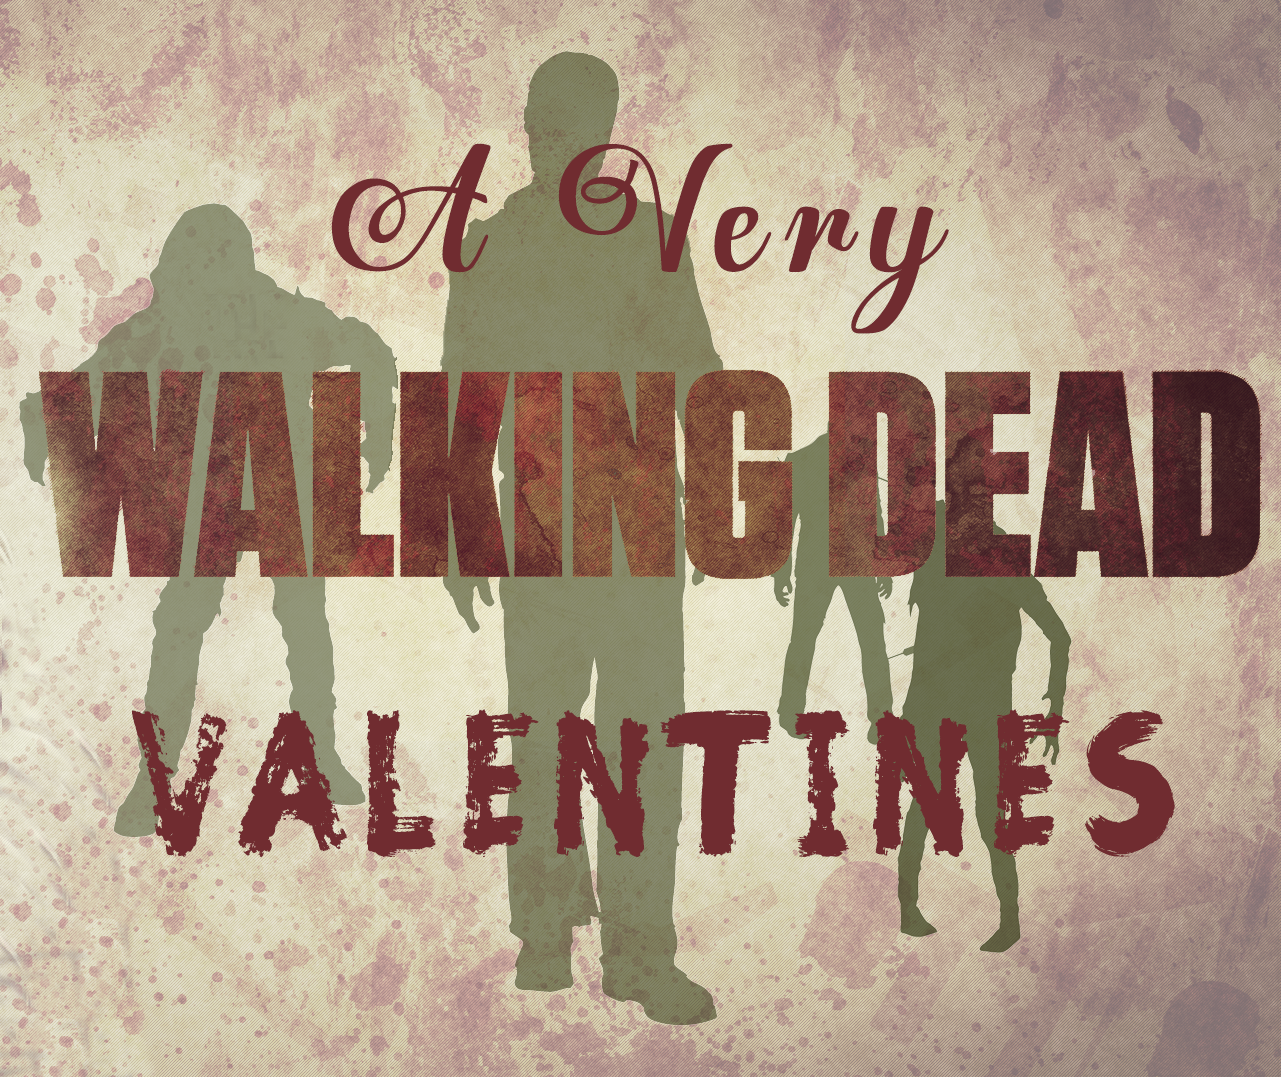 A Very Walking Dead Valentine's